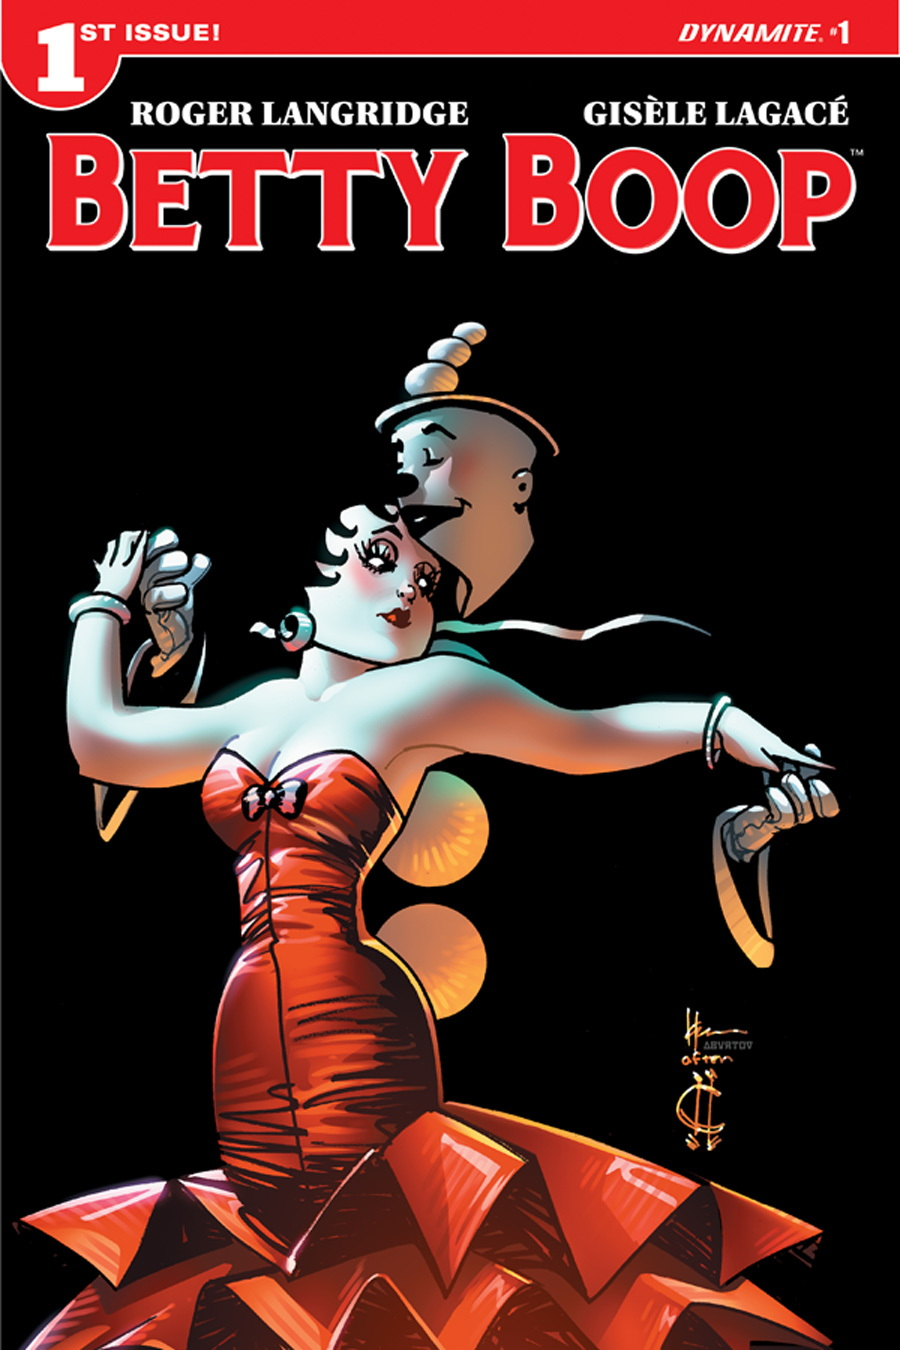 BettyBoop01-Cov-A-Chaykin